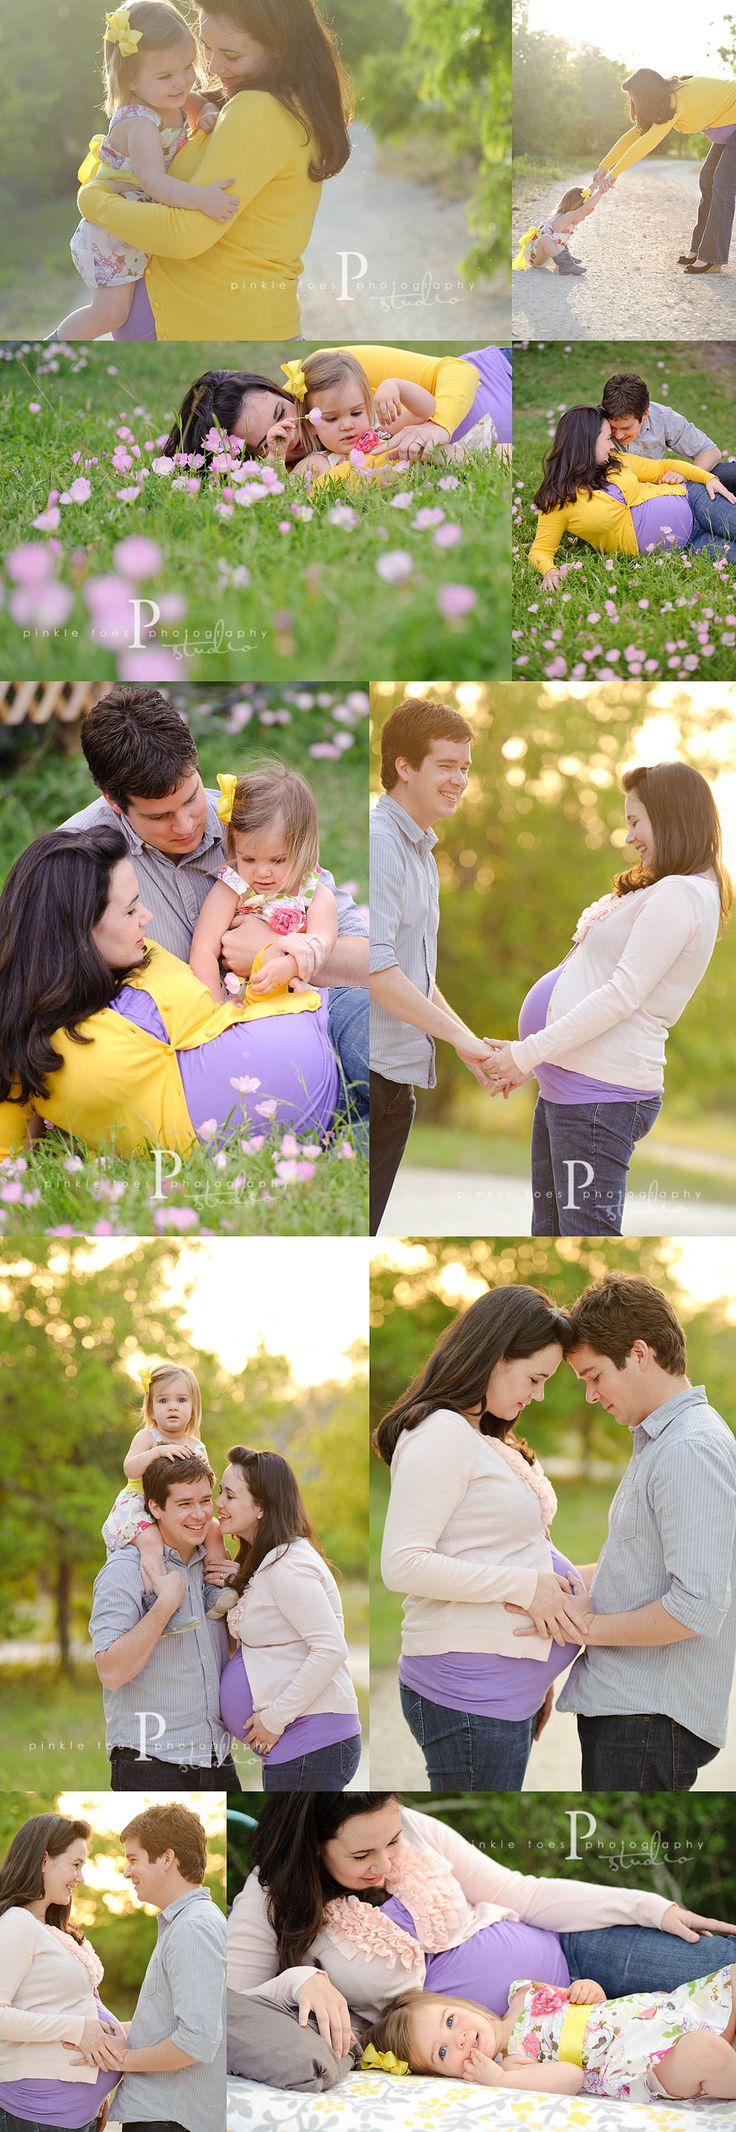 family maternity photos ideas